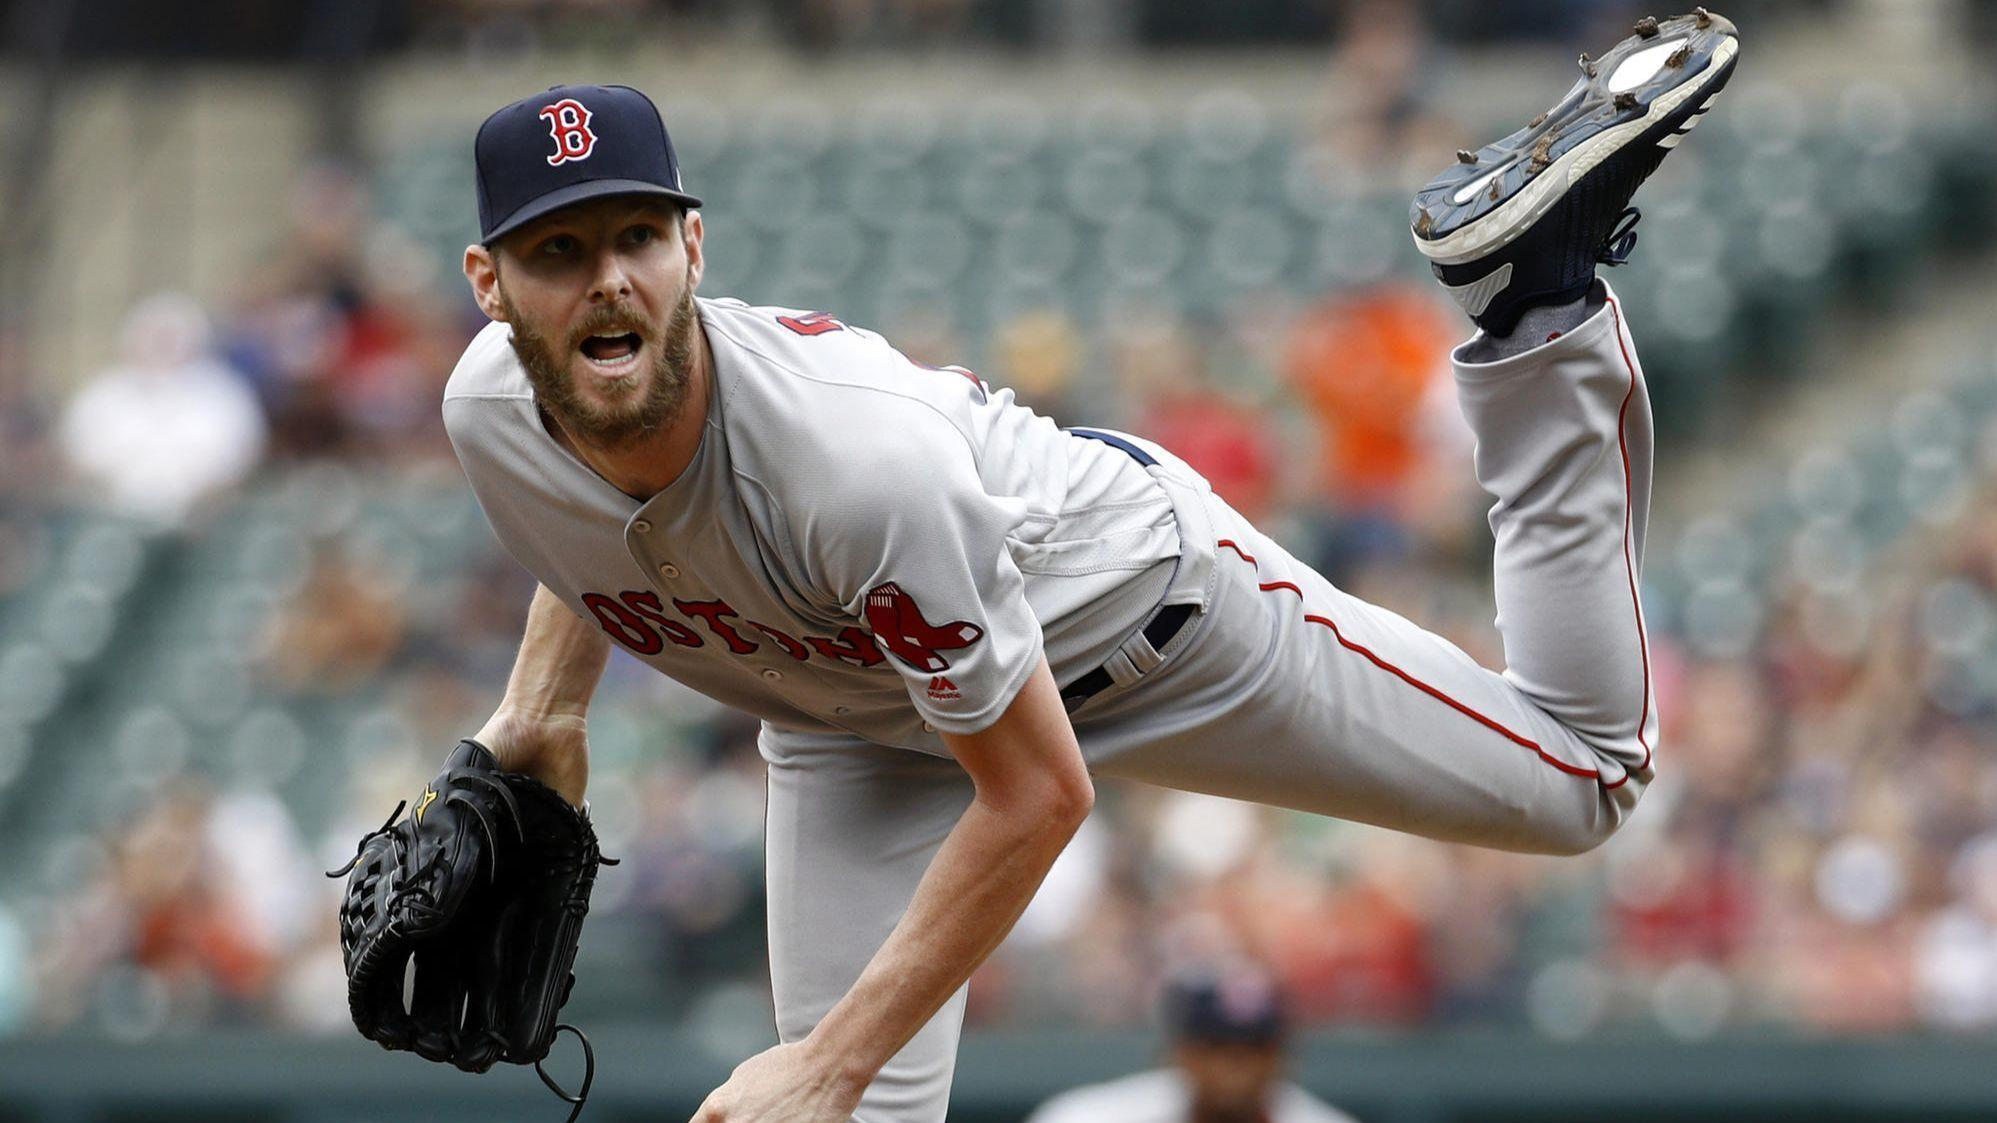 Chris Sale overpowers Orioles to help the Red Sox win 4-1